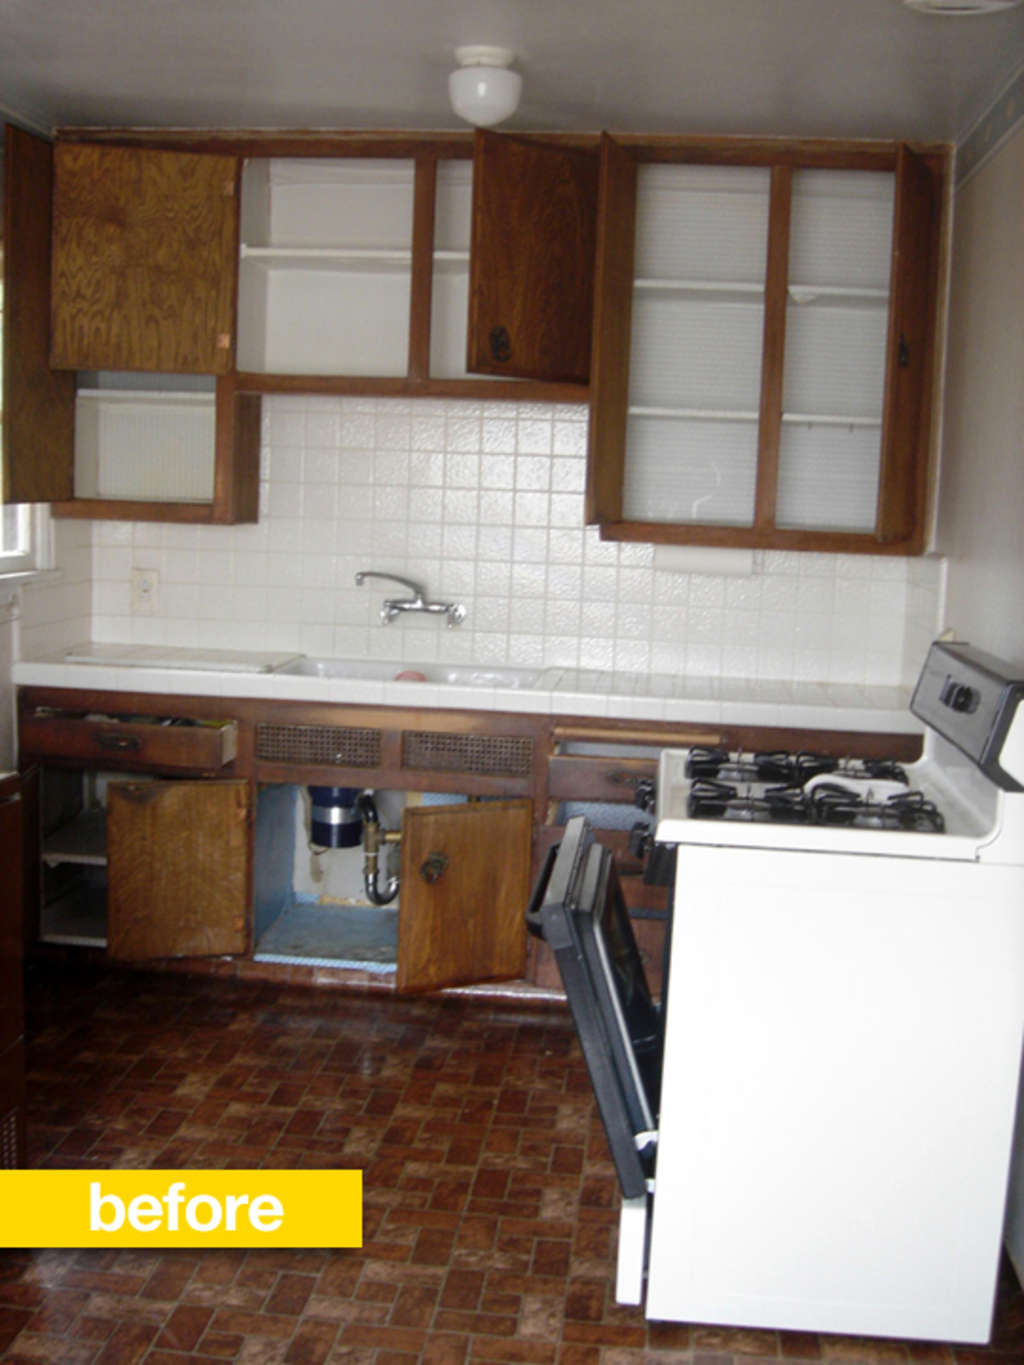 Kitchen Before & After: A 1950s Kitchen Transformed by Mosaic Tiles